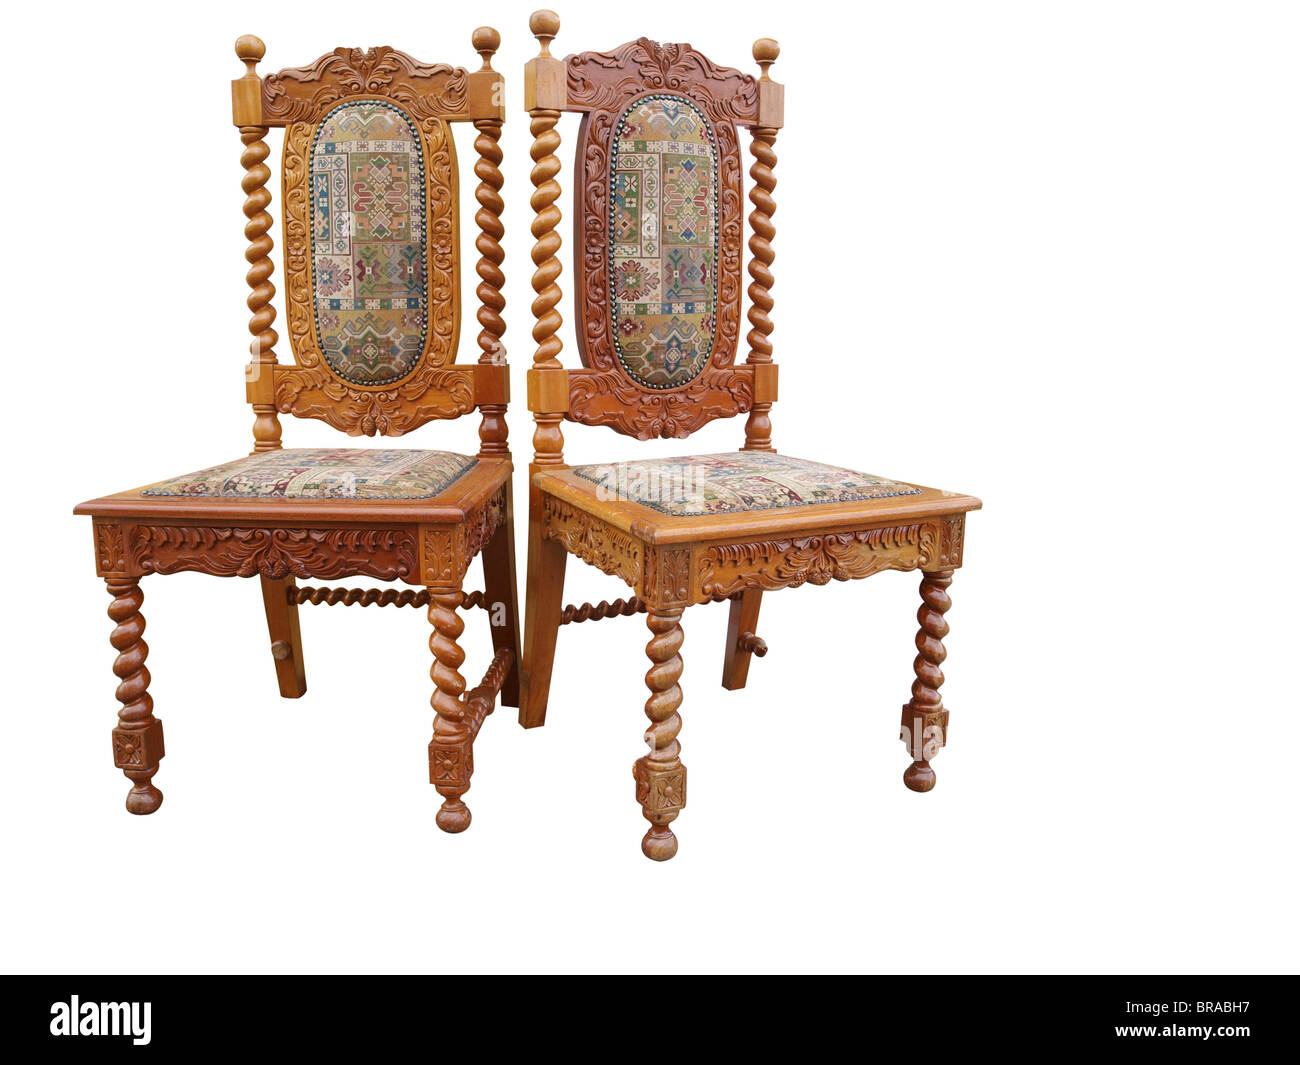 Beautiful Two Antique Ornate Chairs Isolated With Clipping Path